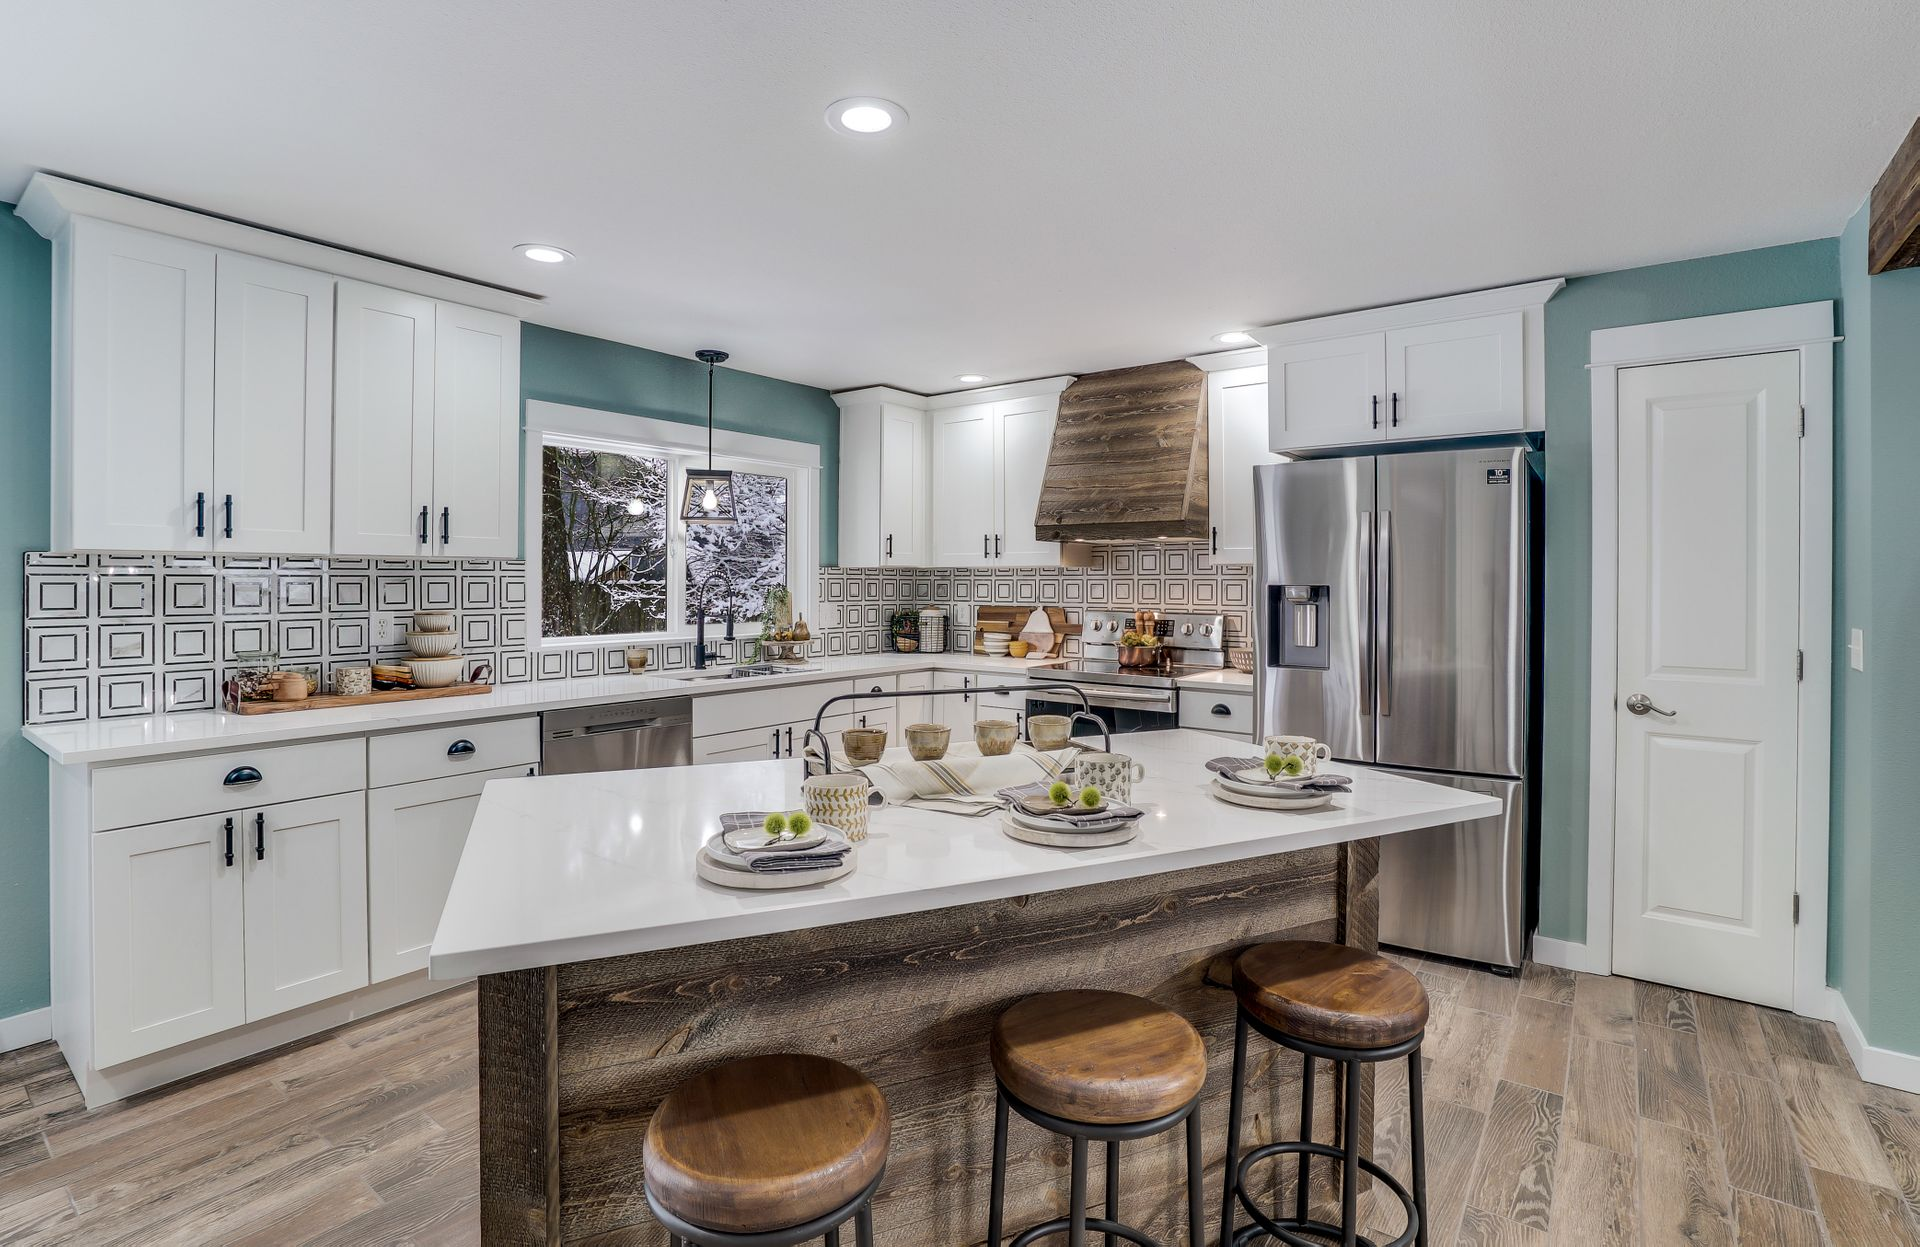 A contemporary farmstyle kitchen design from JL Remodeling